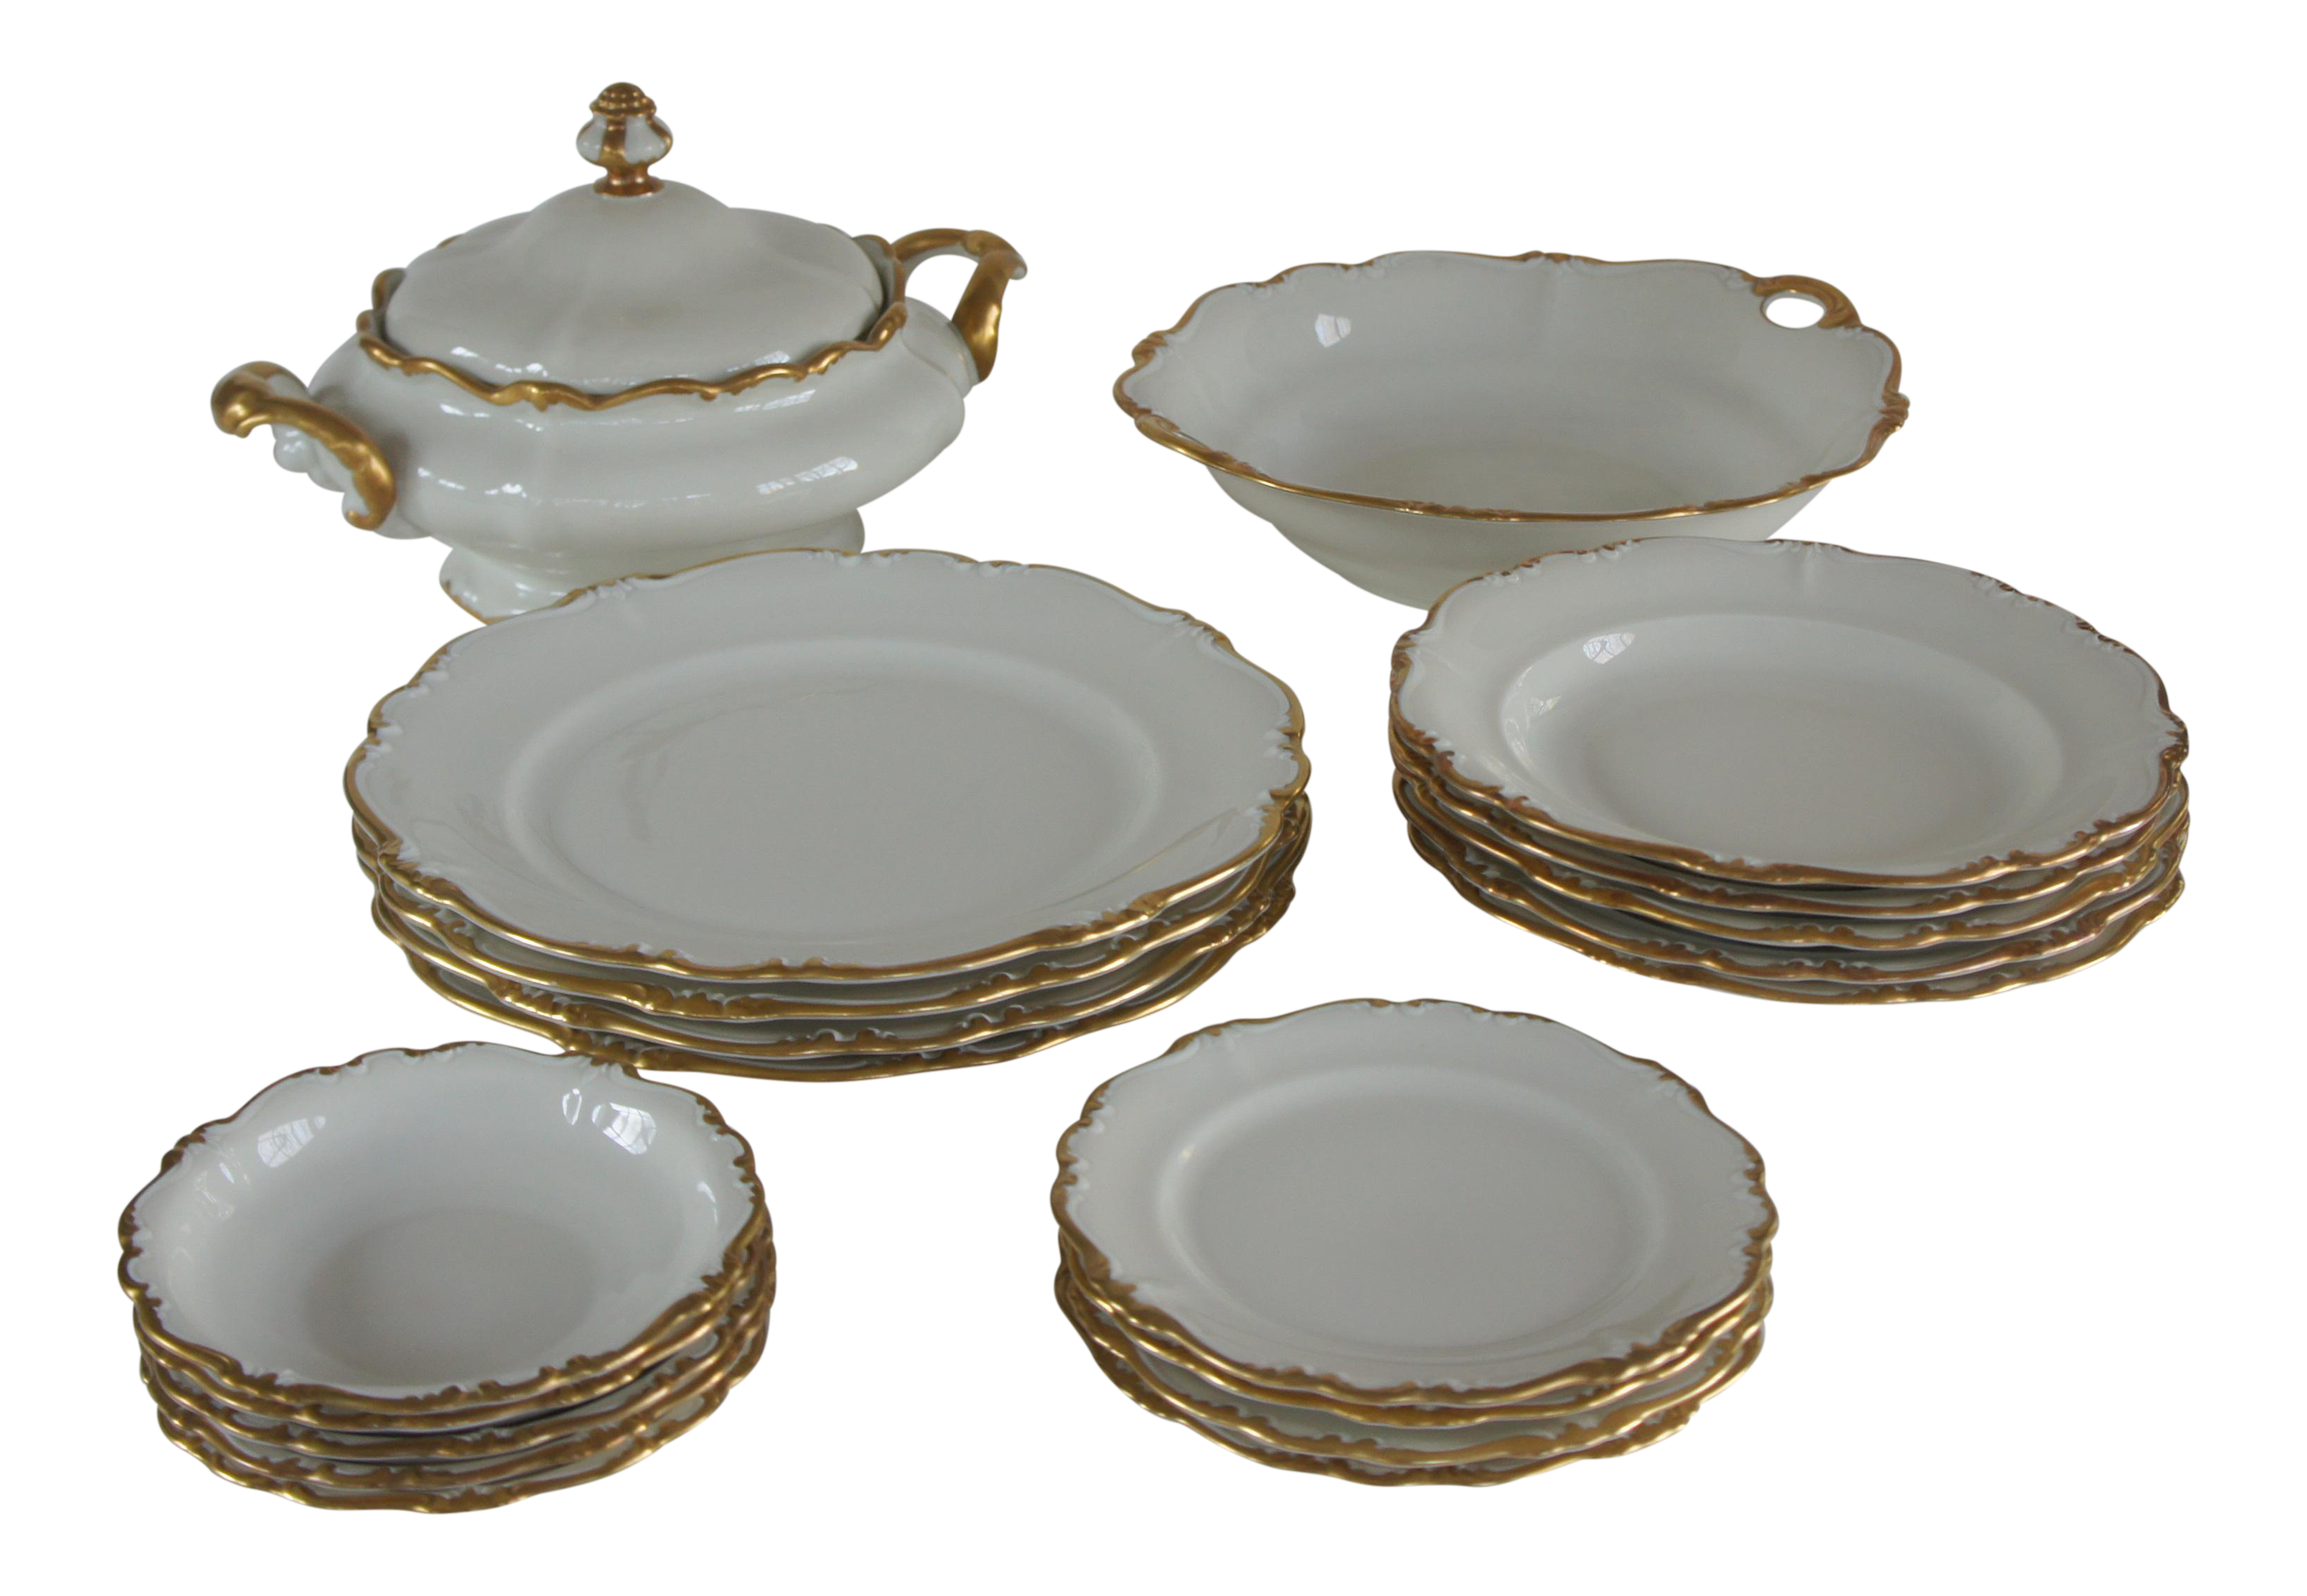 Rosenthal Pompadour Baroque Gold Dinnerware Set - Service for 4 Plus Extras - Image 1 of  sc 1 st  Chairish & Rosenthal Pompadour Baroque Gold Dinnerware Set - Service for 4 Plus ...